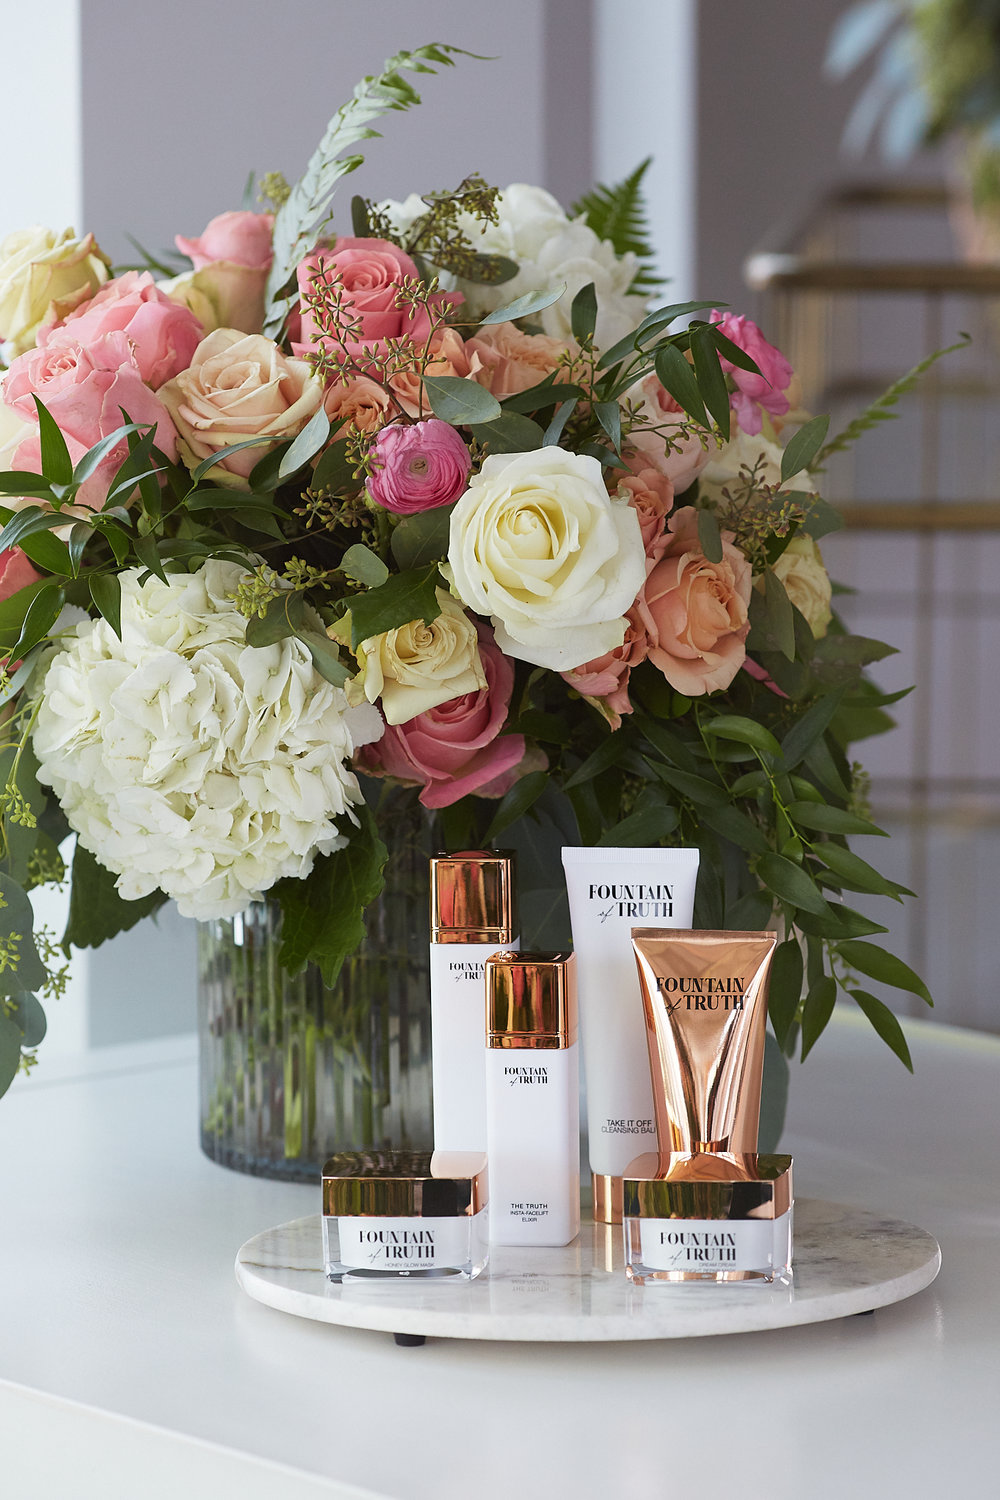 Giuliana Rancic's Fountain of Truth Beauty Launch in NYC